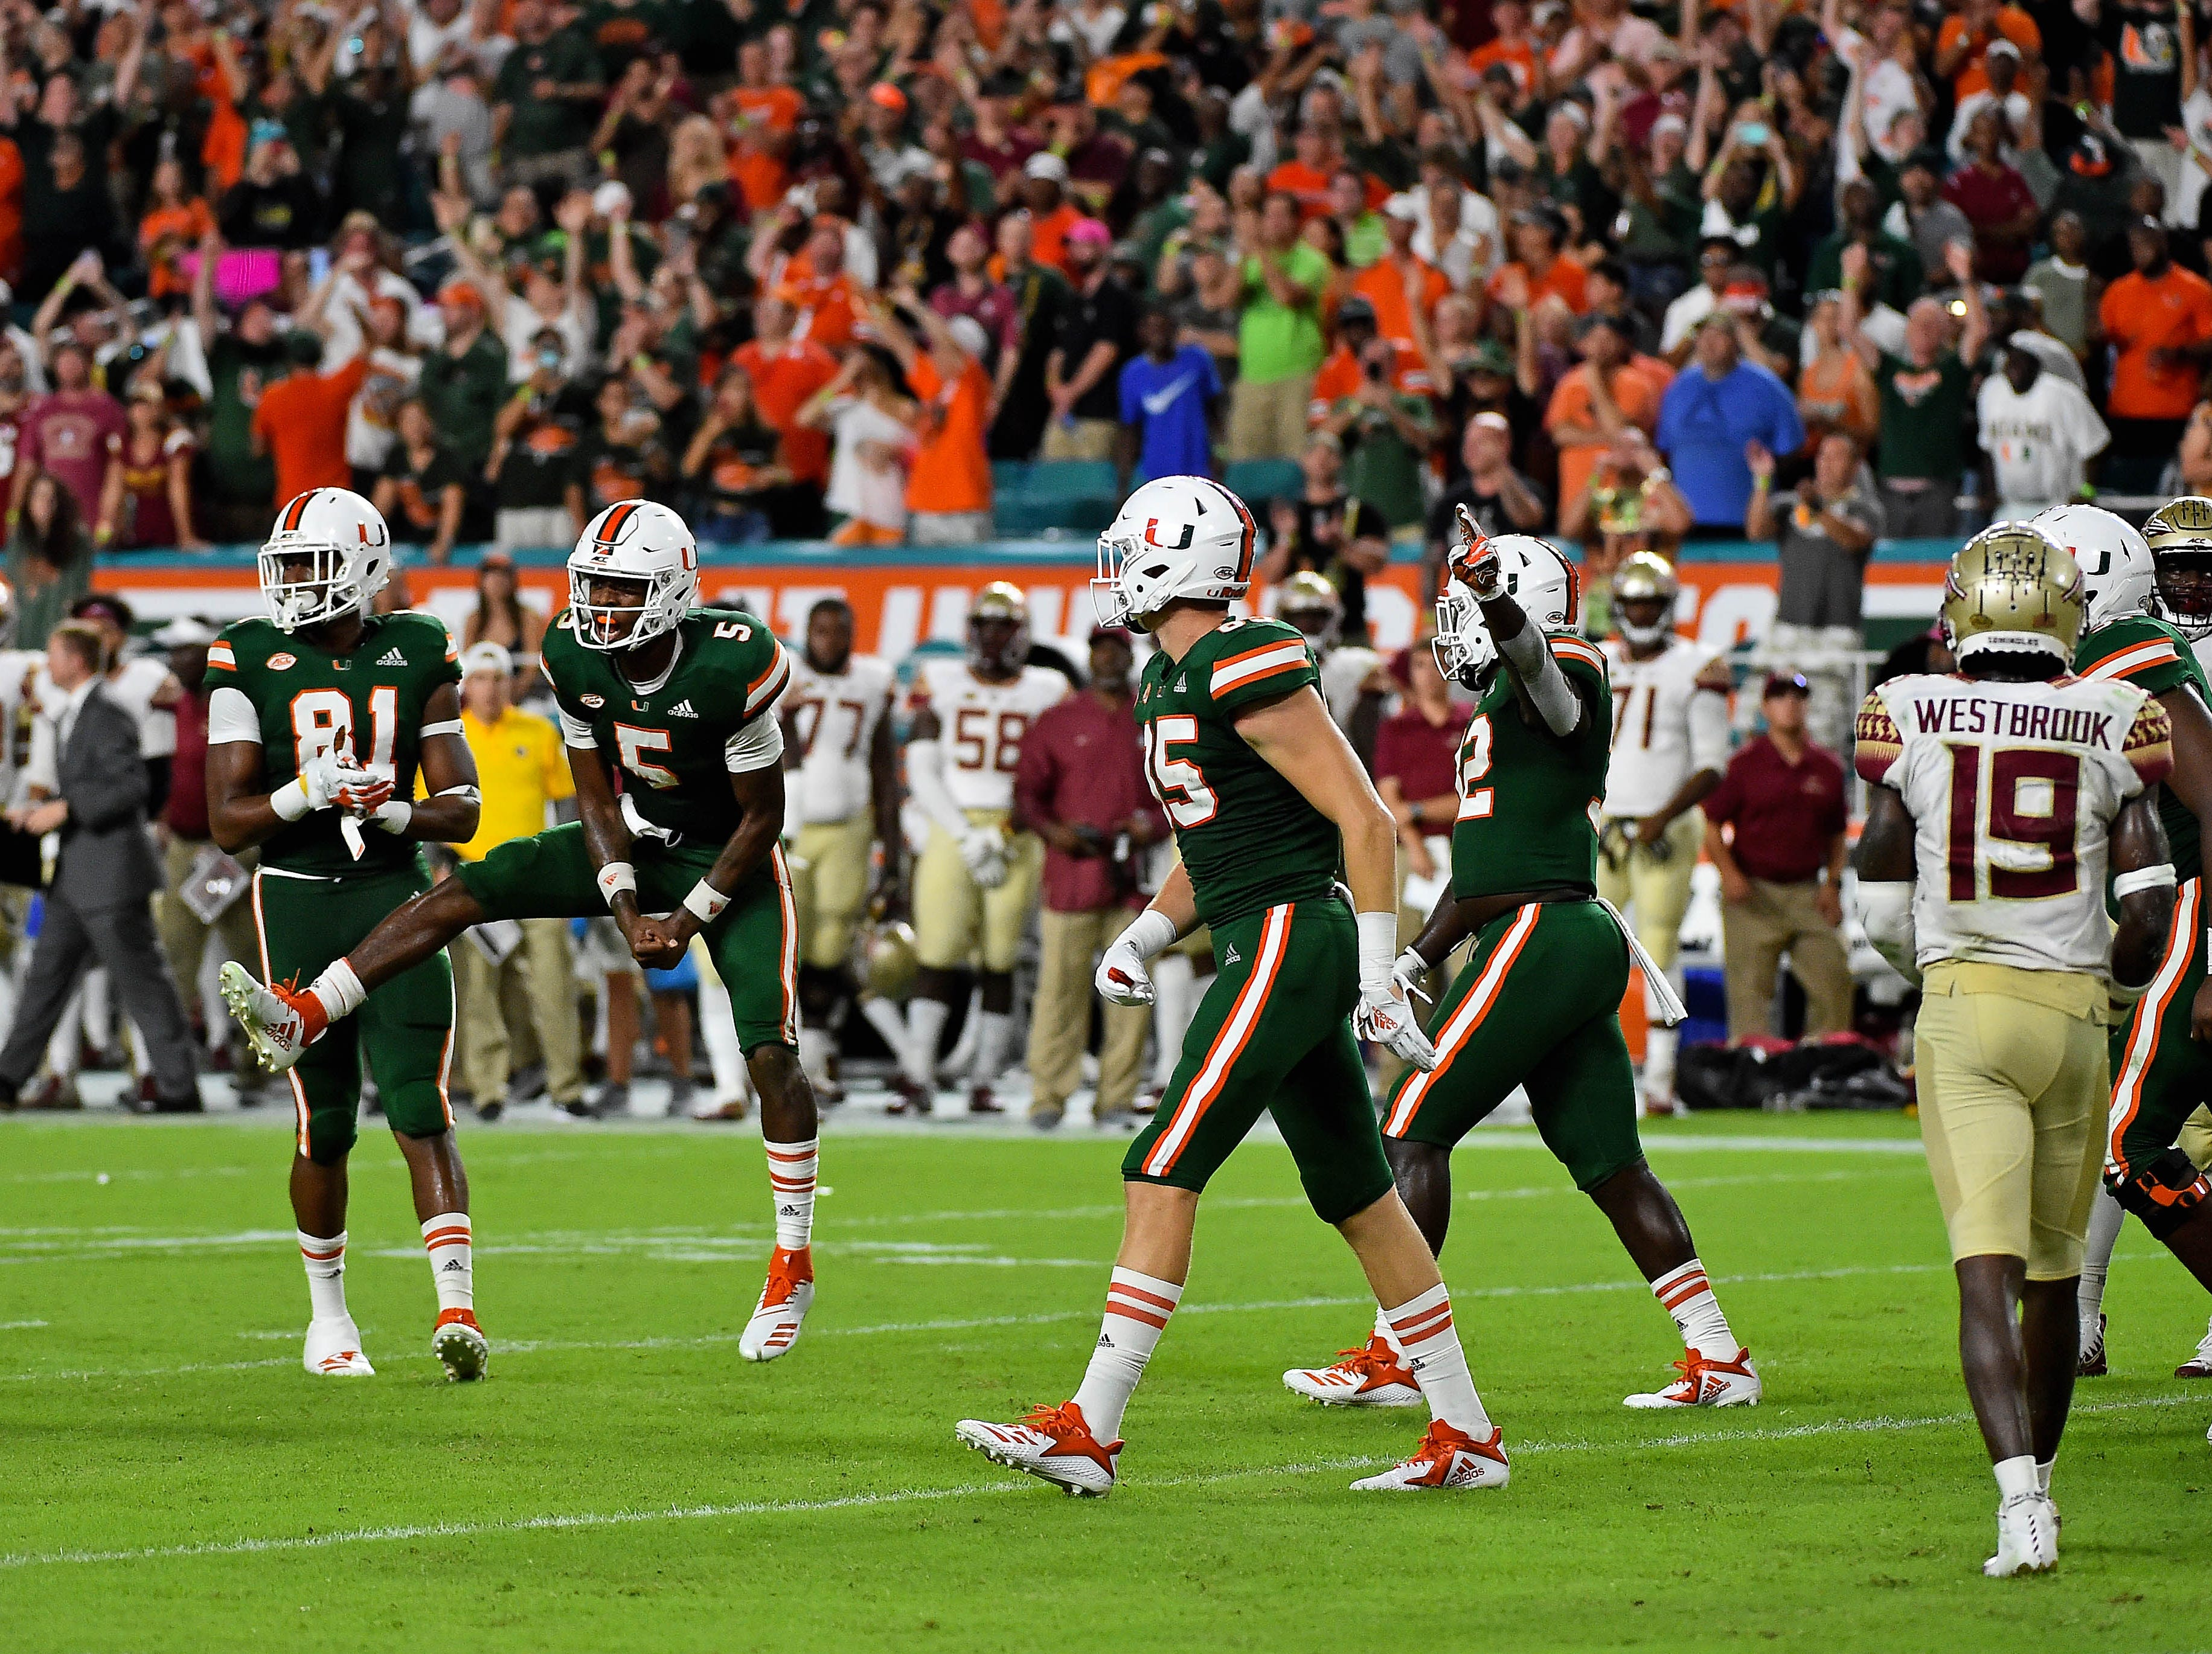 Oct 6, 2018; Miami Gardens, FL, USA; Miami Hurricanes quarterback N'Kosi Perry (5) celebrates after defeating the Florida State Seminoles at Hard Rock Stadium. Mandatory Credit: Jasen Vinlove-USA TODAY Sports